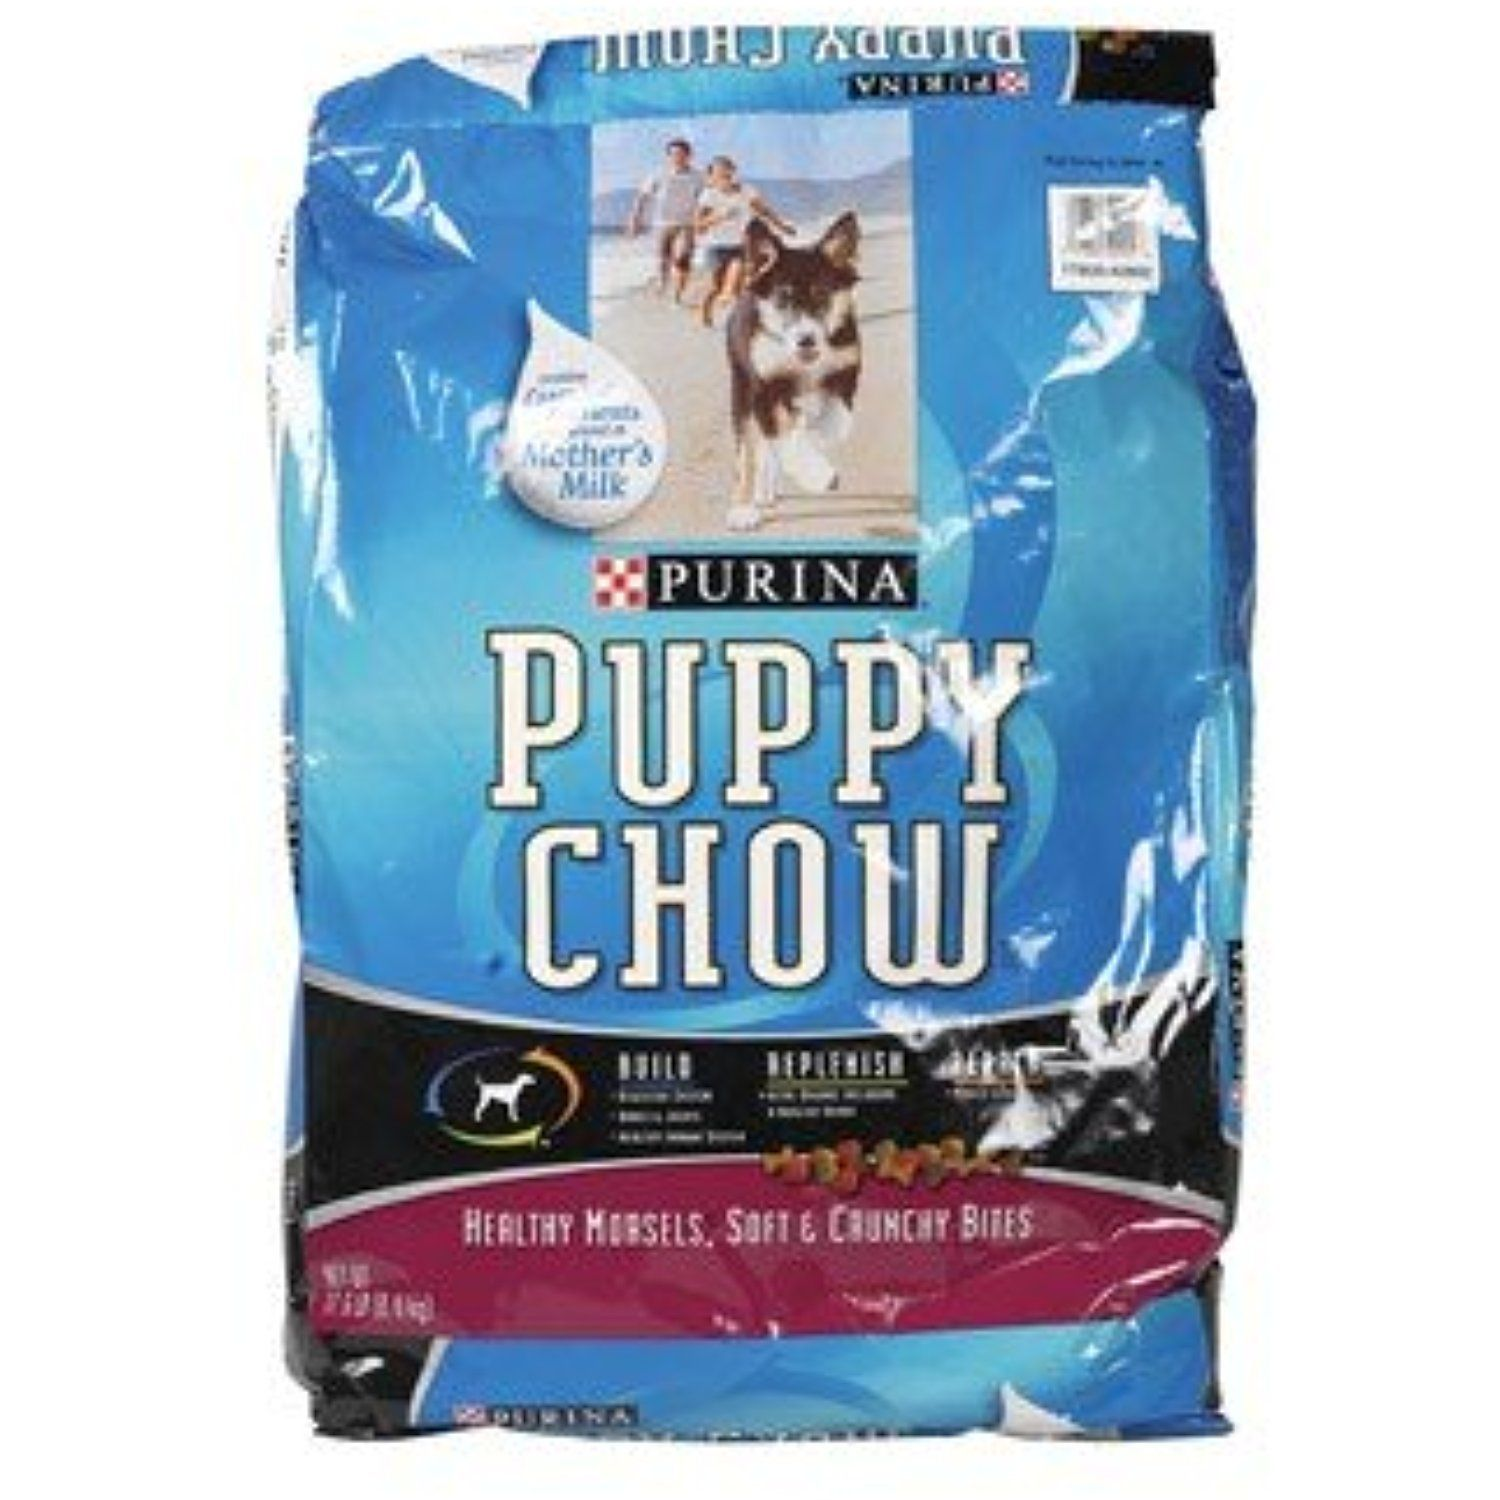 Purina Puppy Chow Dry 16 5 Lbs You Can Click Image For More